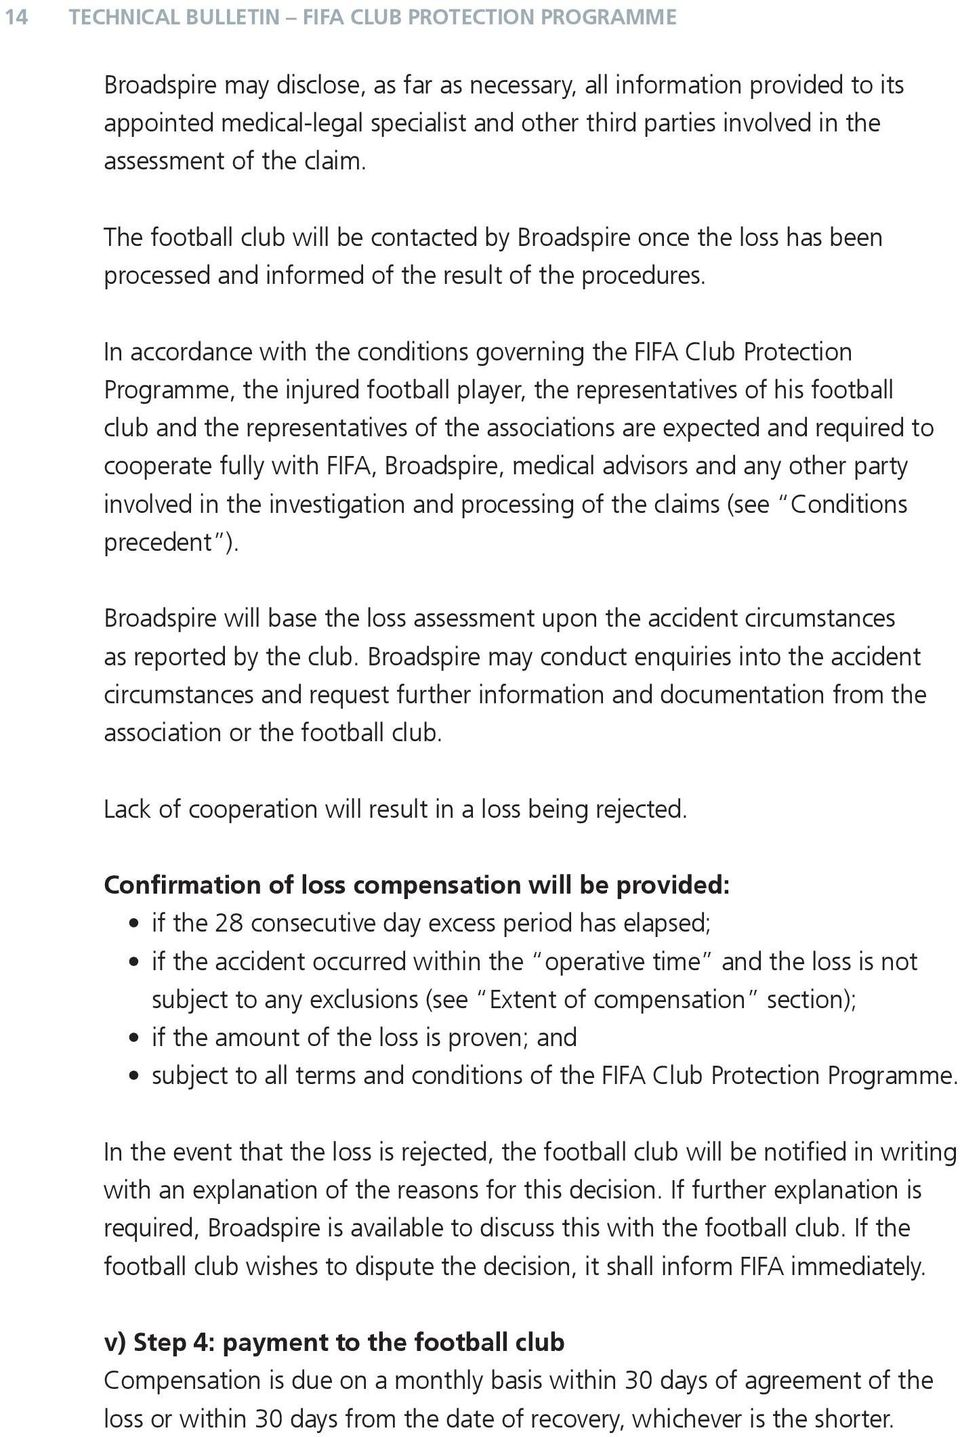 In accordance with conditions governing FIFA Club Protection Programme, injured football player, representatives his football club representatives associations are expected required to cooperate